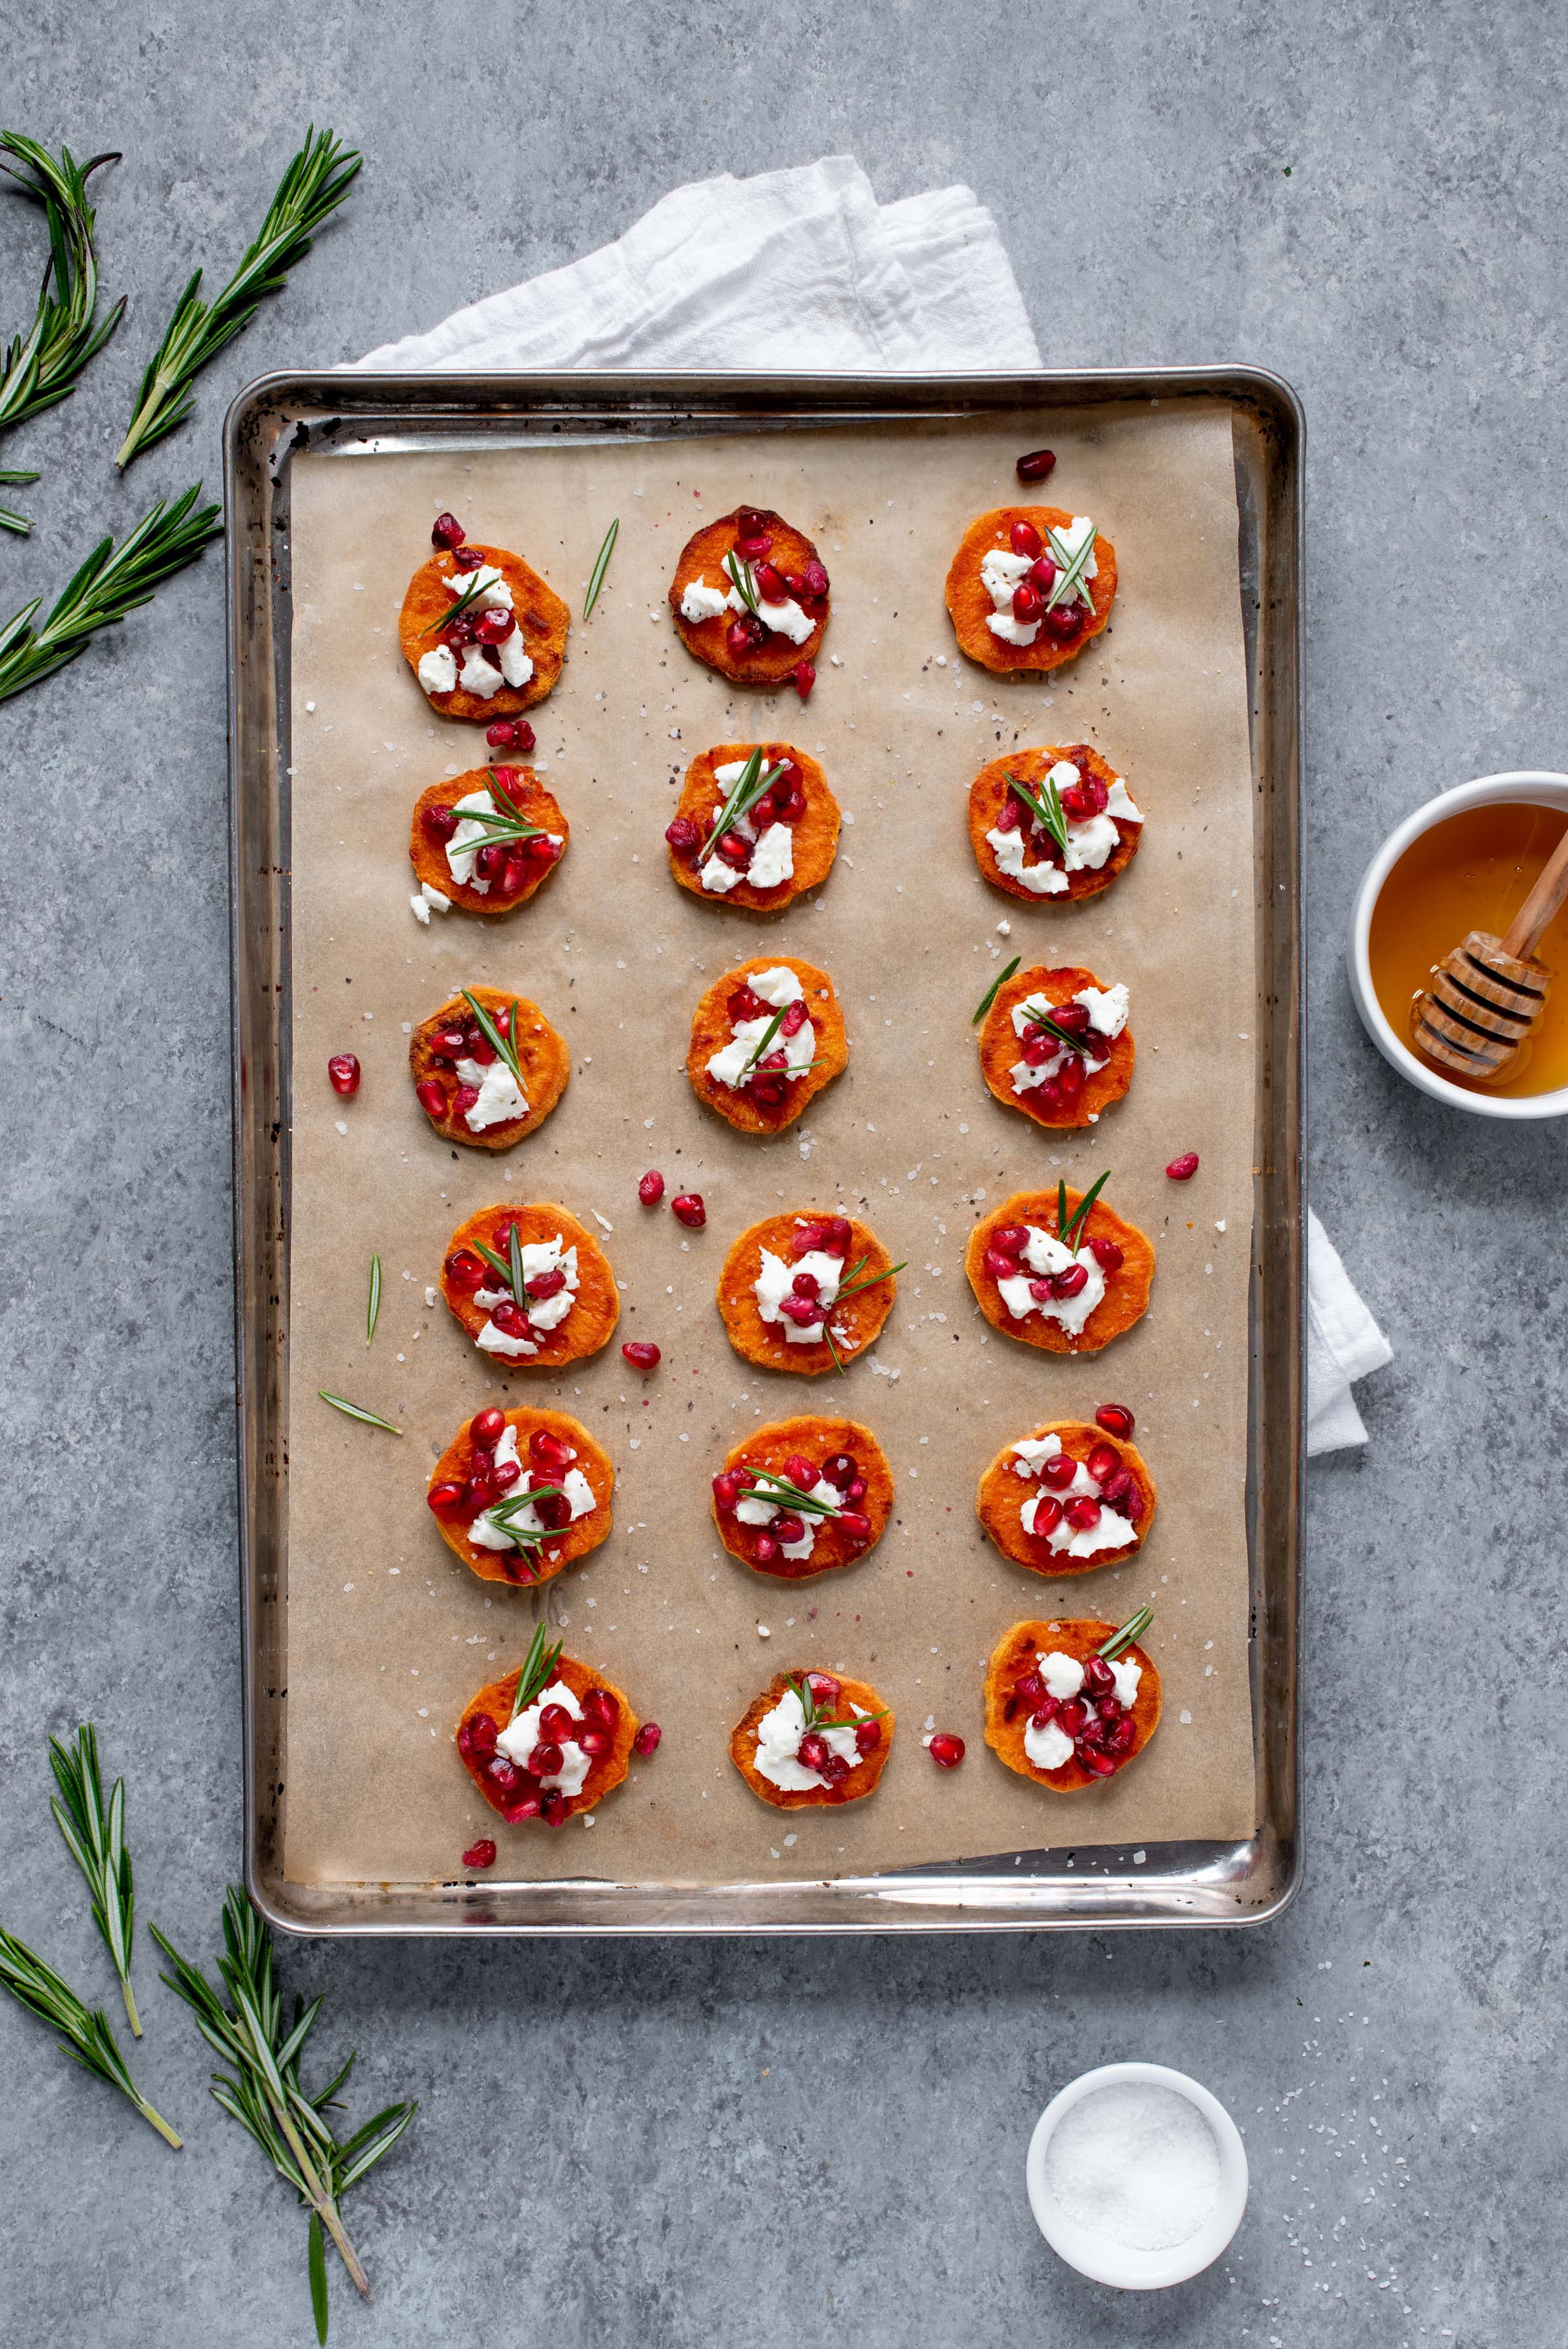 Sweet Potato Crostini with Goat Cheese and Pomegranate spread out on a baking sheet lined with parchment paper